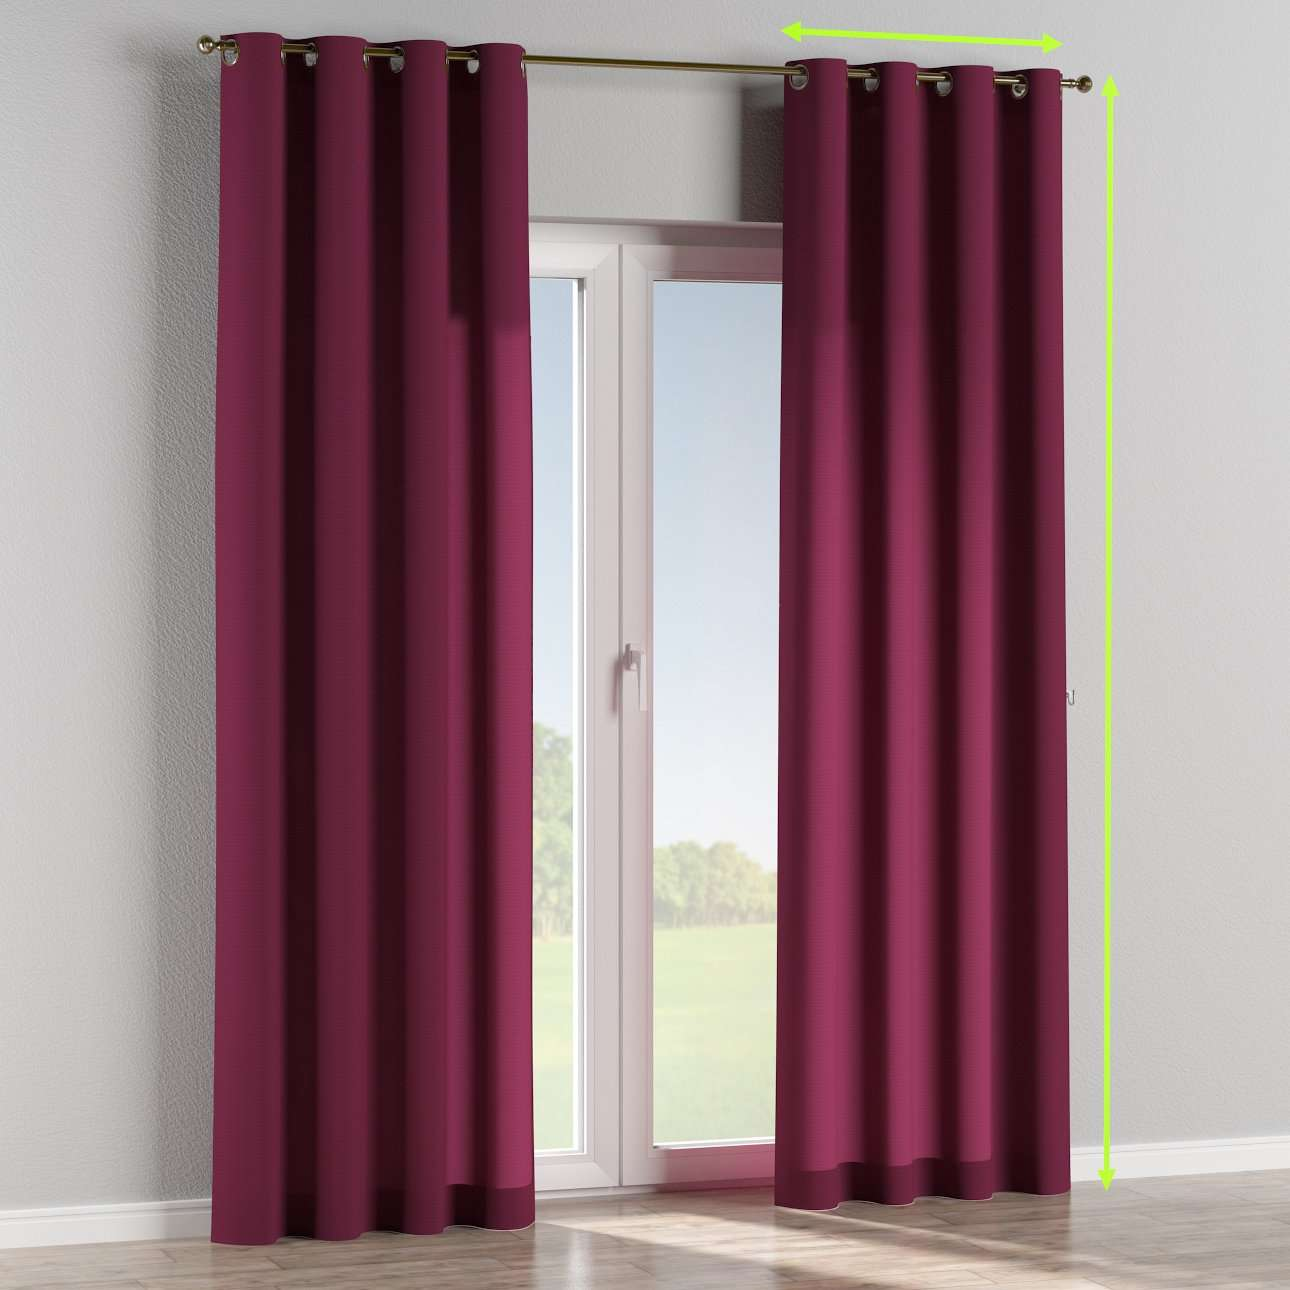 Eyelet curtains in collection Jupiter, fabric: 127-20